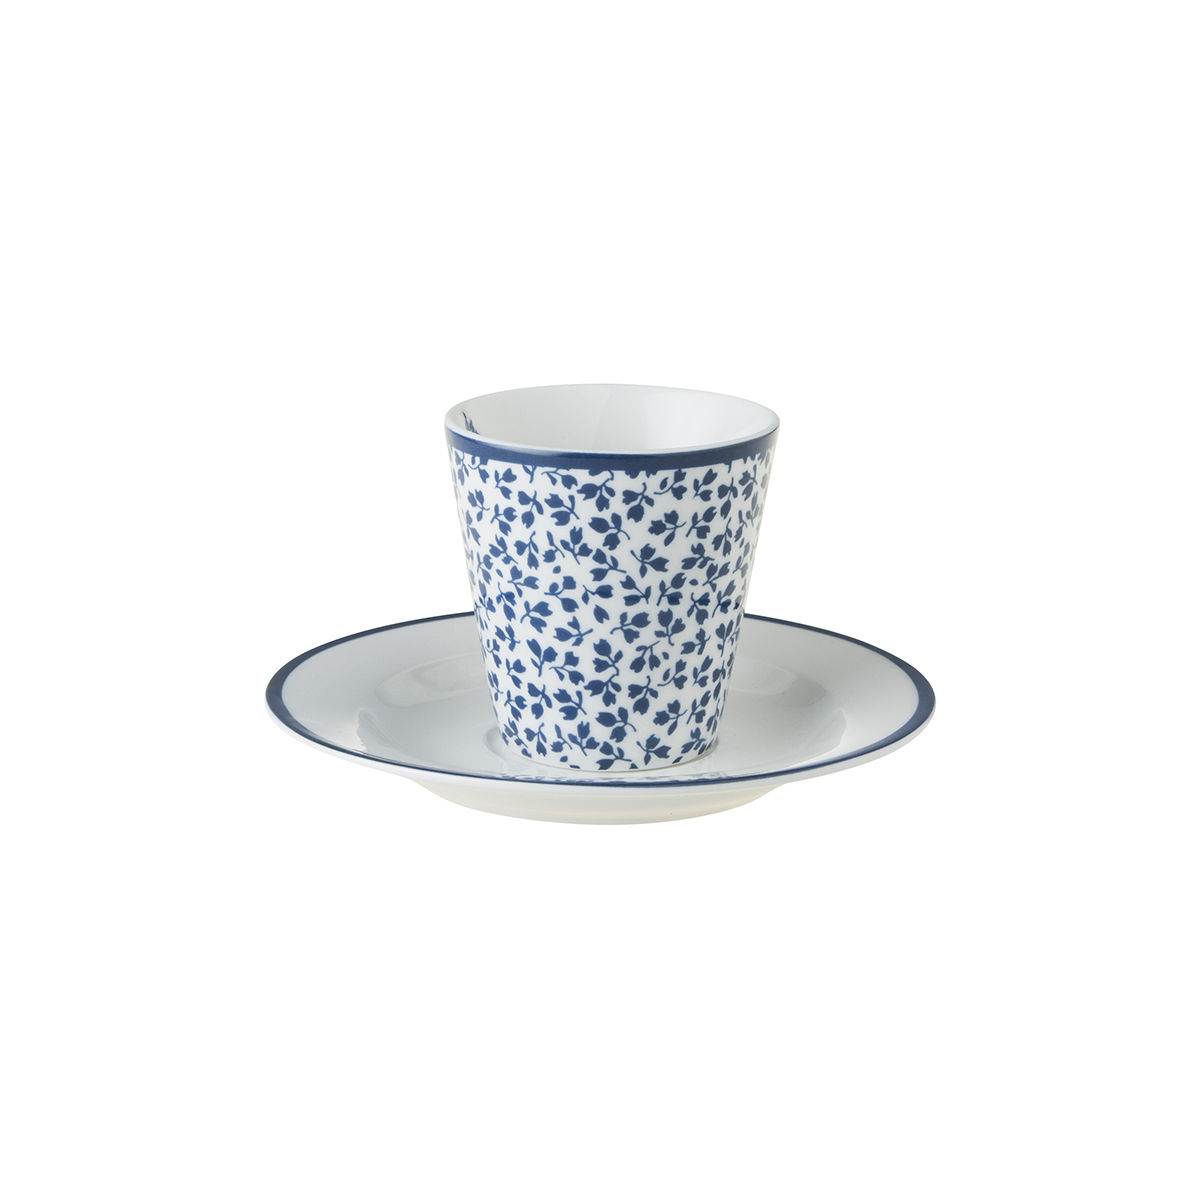 Laura Ashley Espresso Cup and Saucer Floris - product images  of